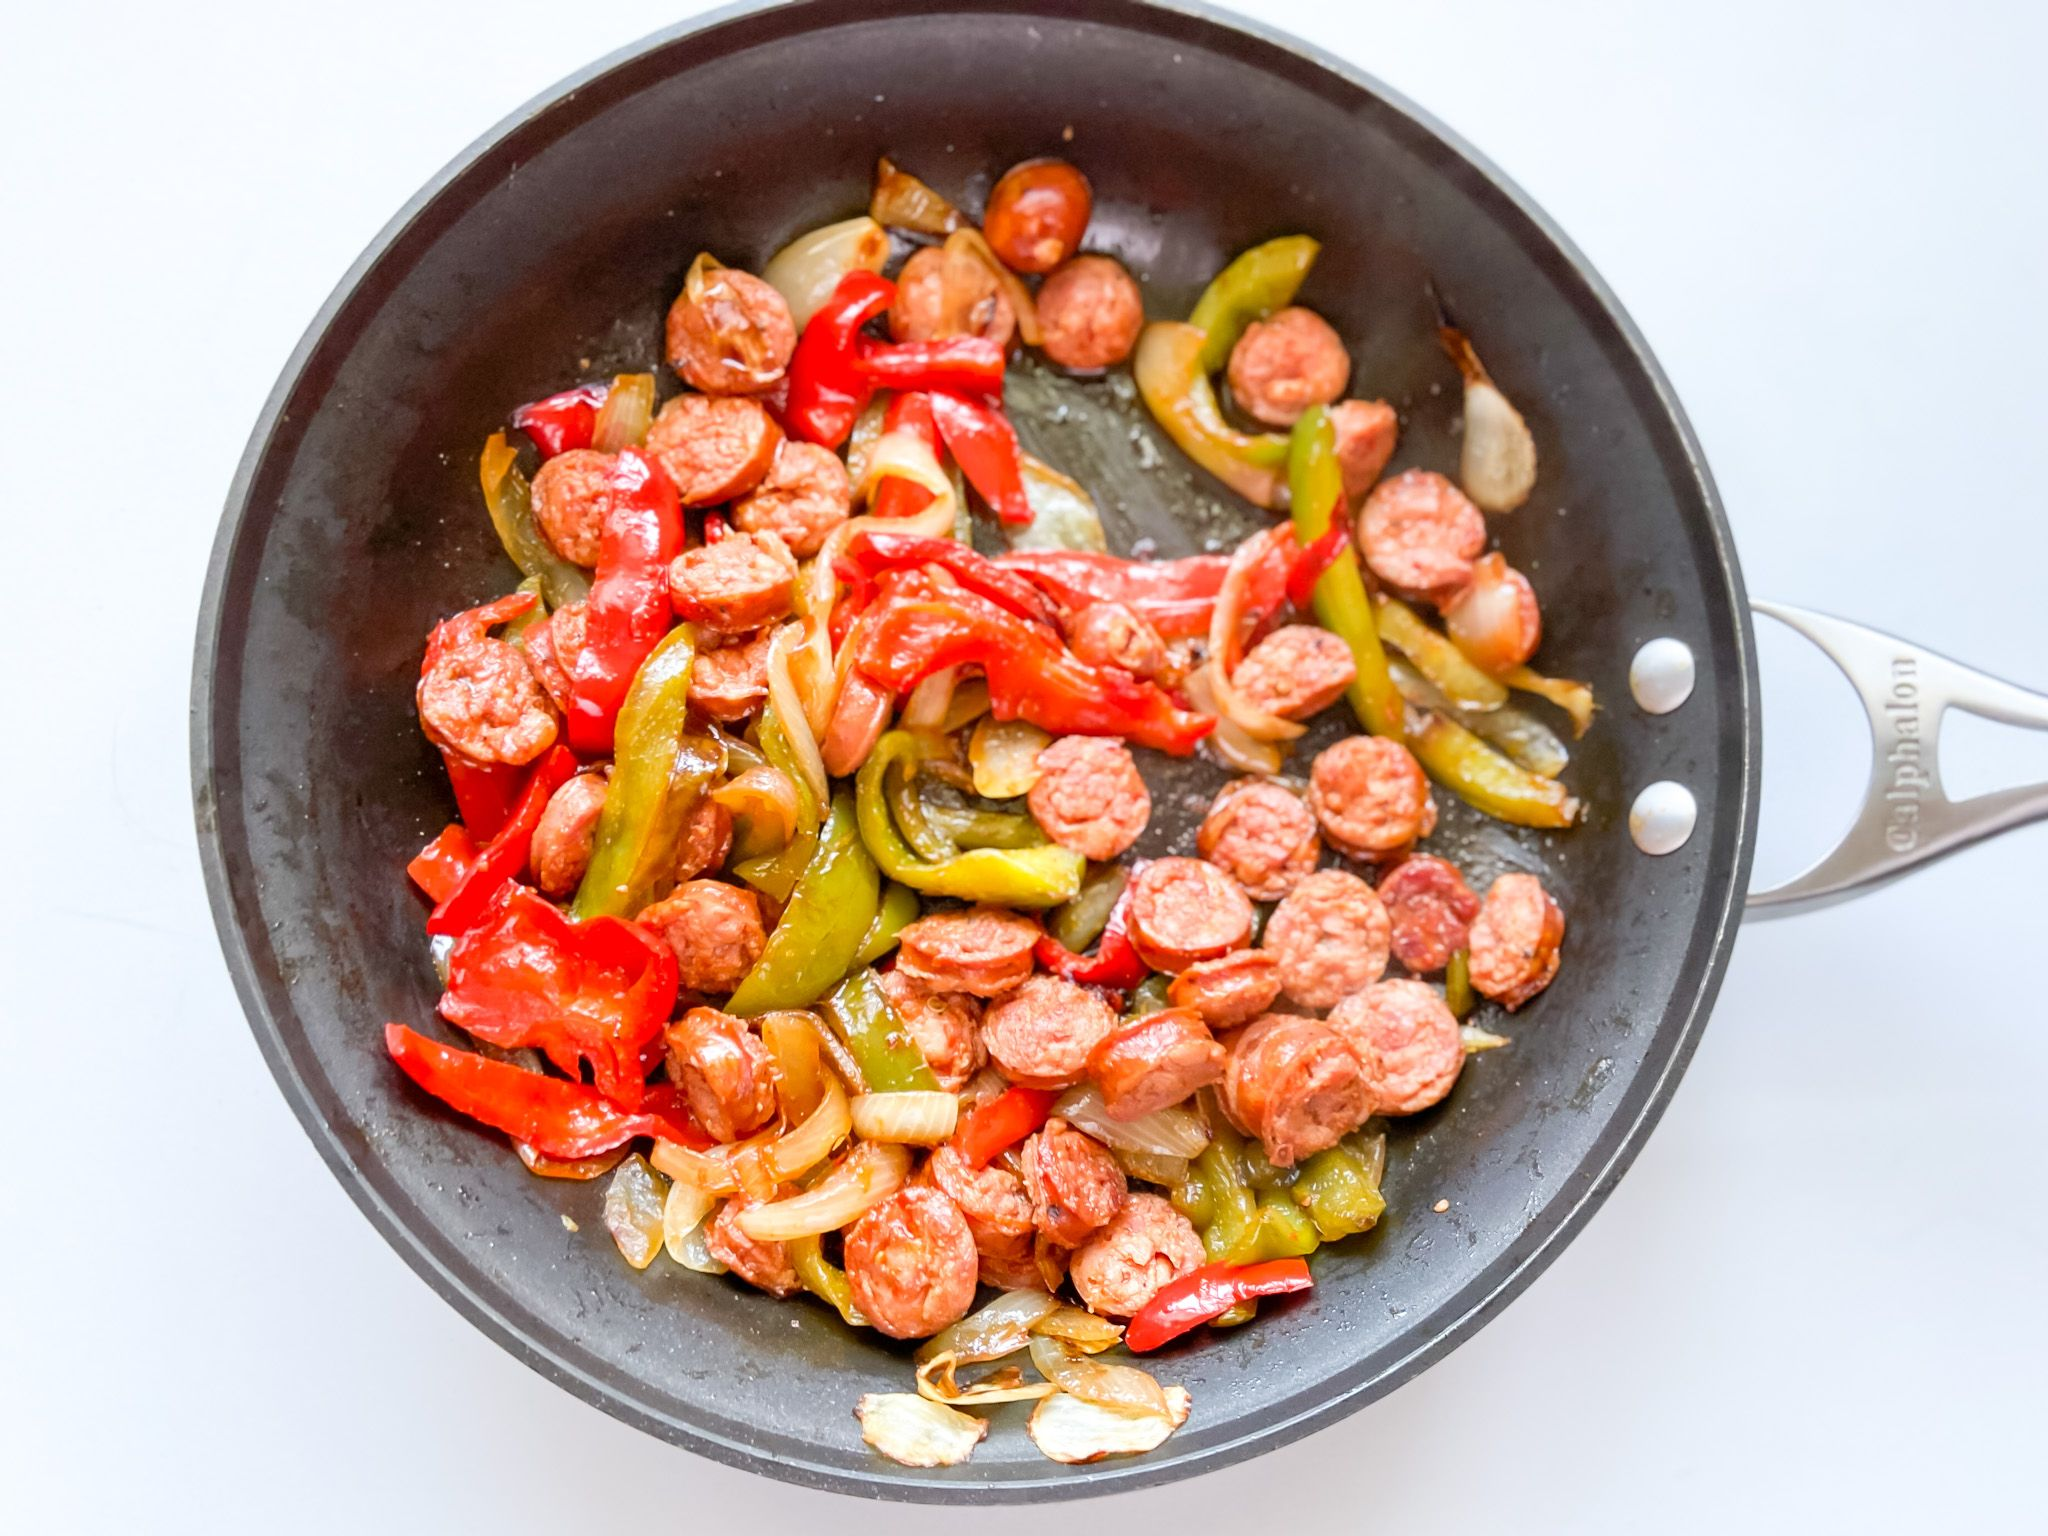 sausage and peppers in skillet